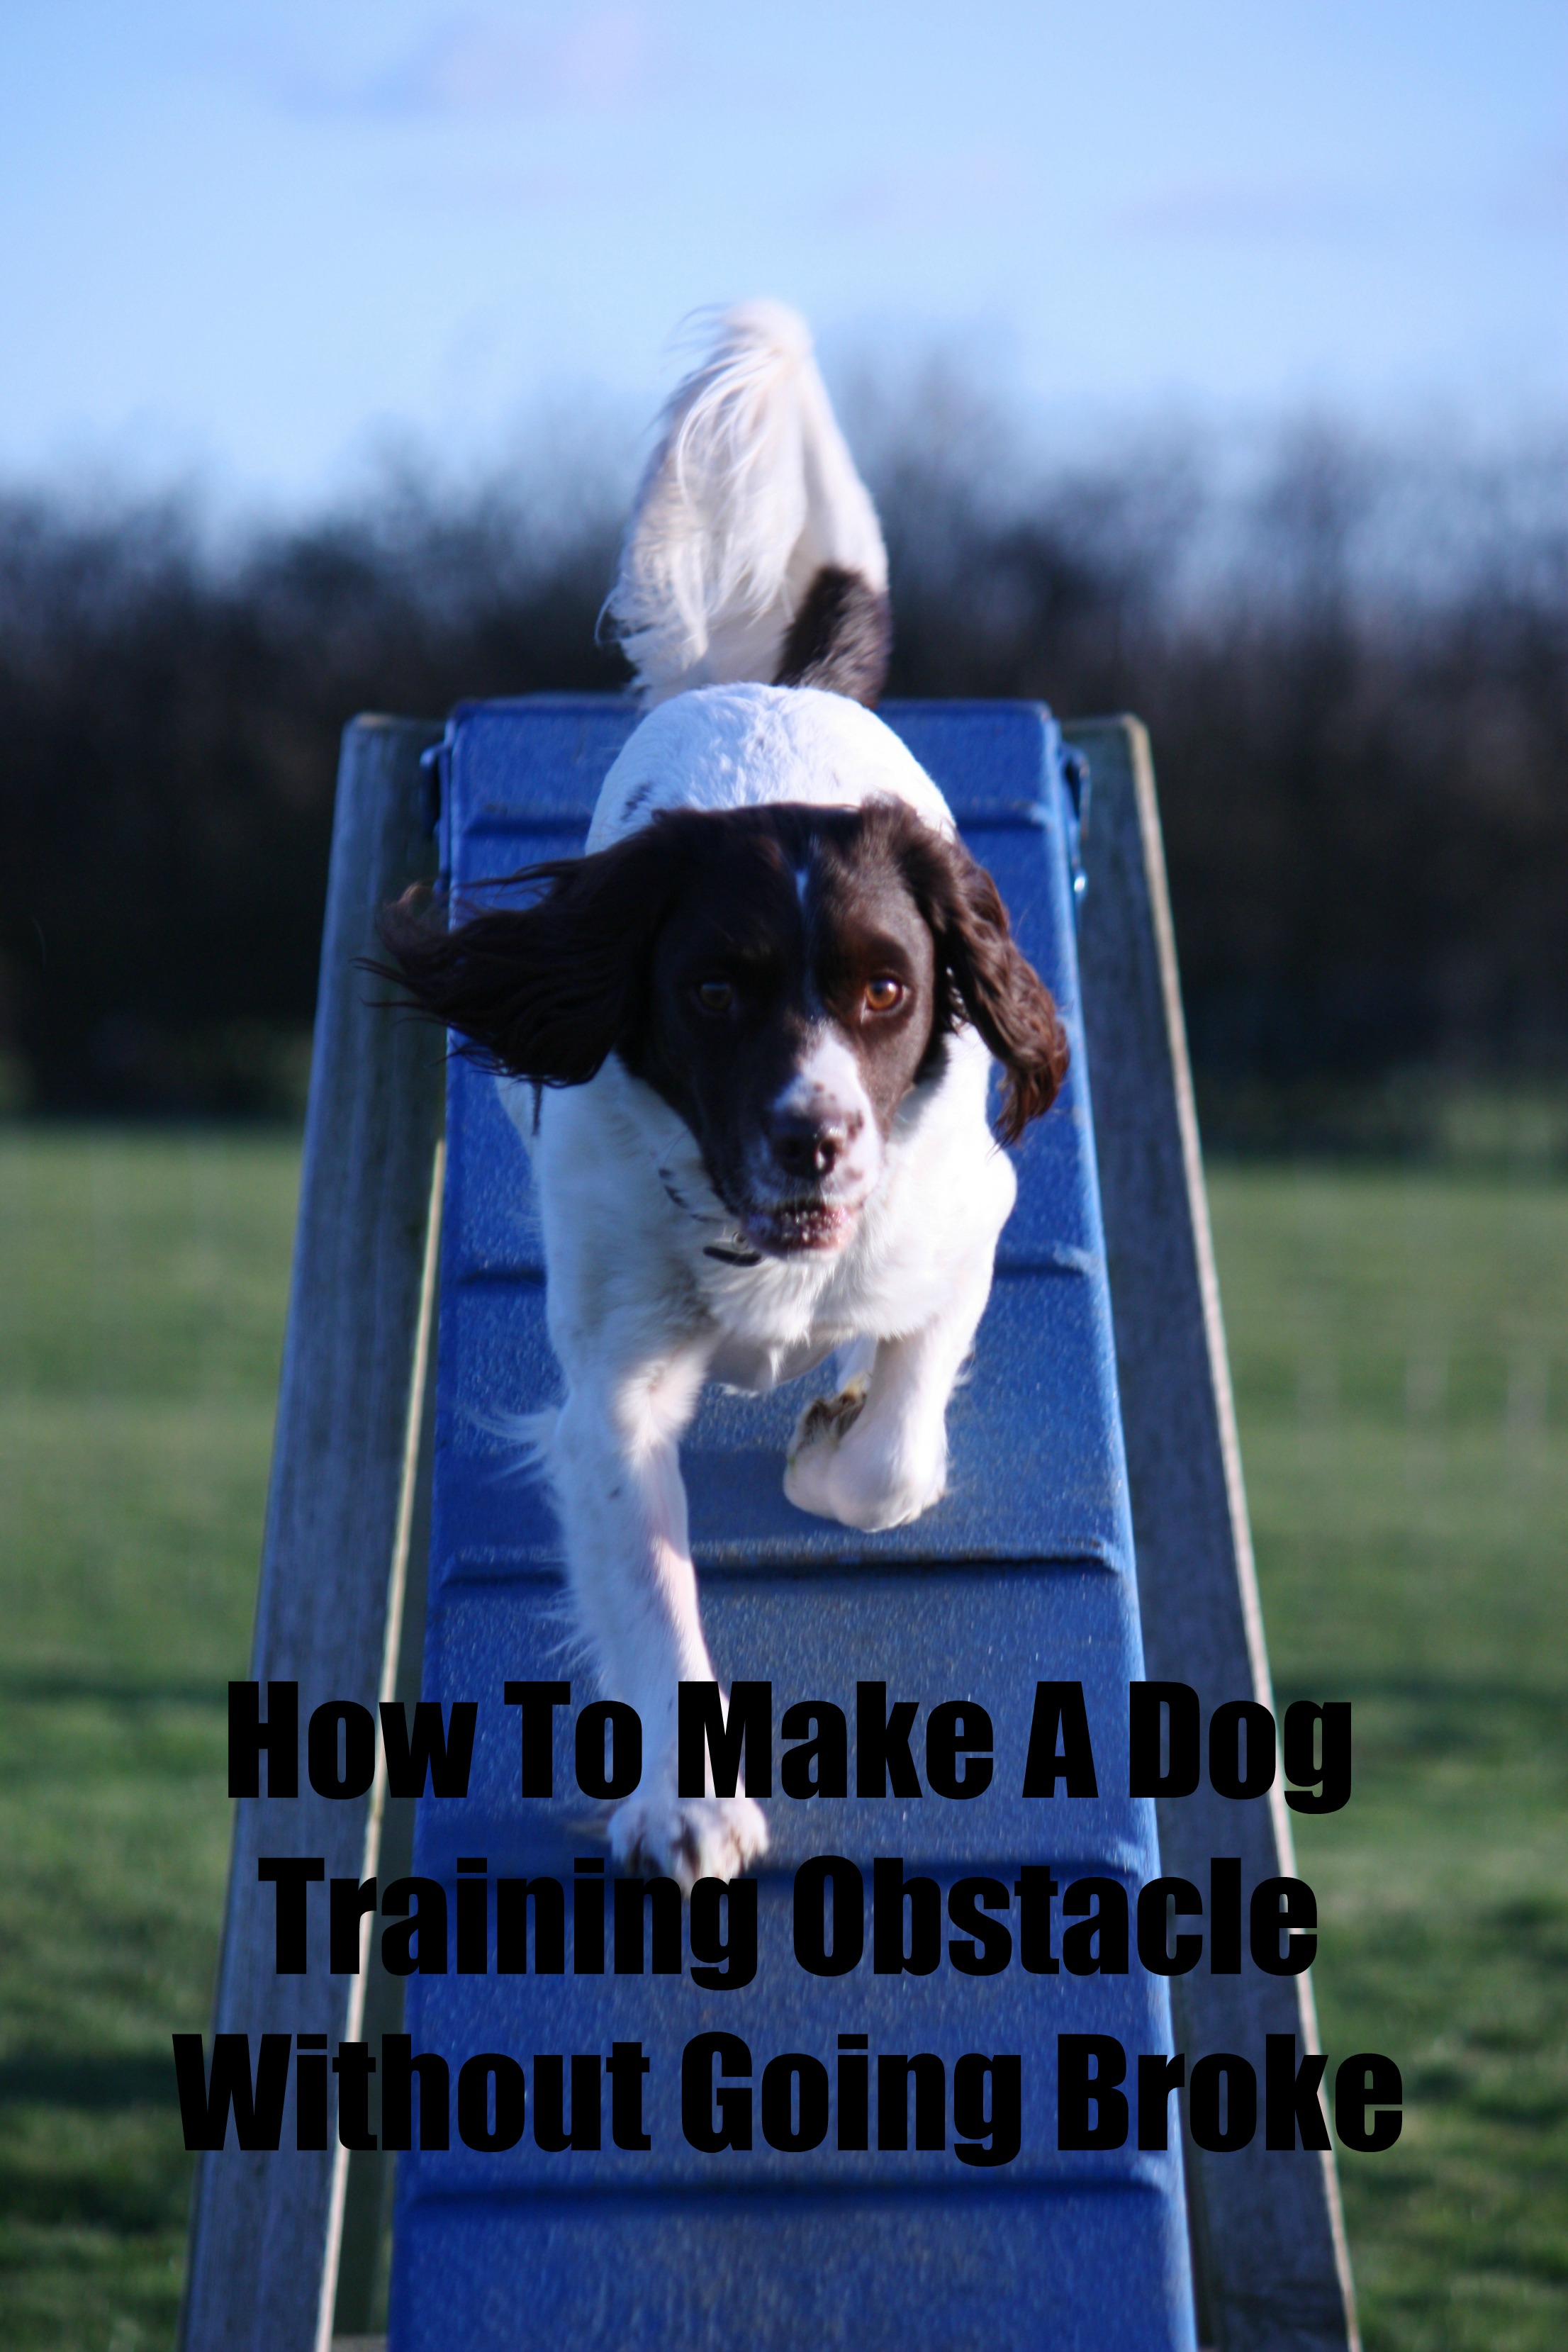 How To Make A Dog Training Obstacle Course Without Going Broke